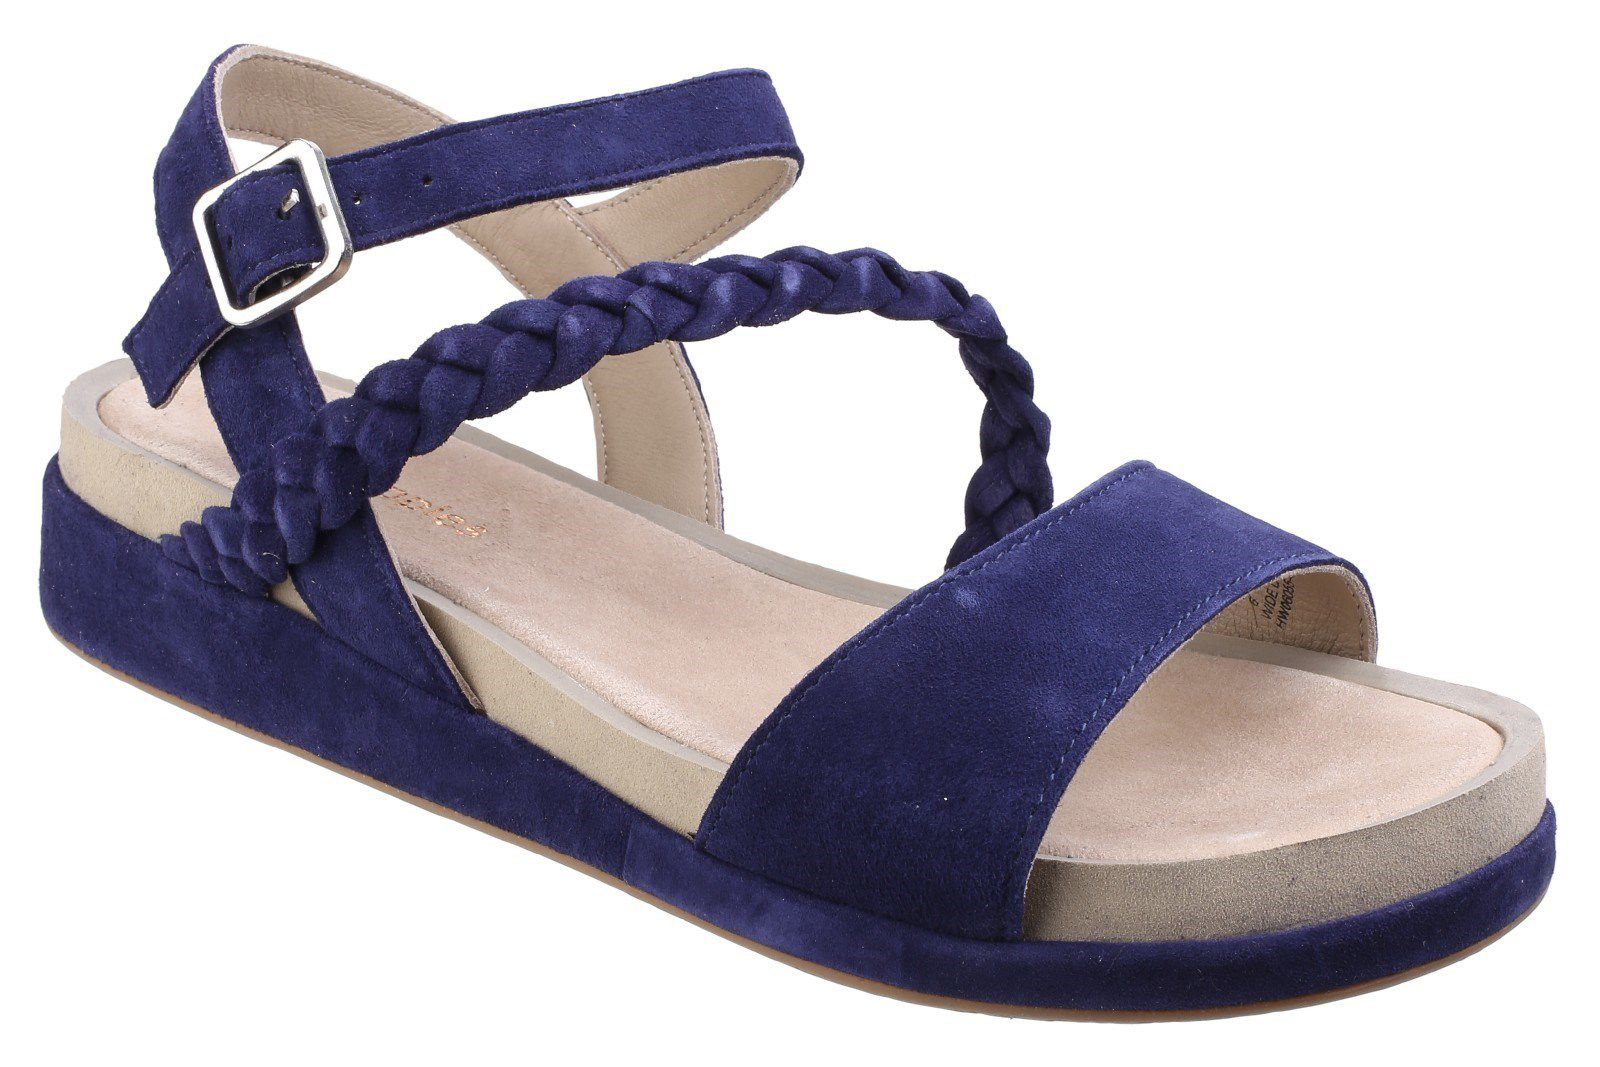 Hush Puppies Giovanna chrysta buckle sandals Blue